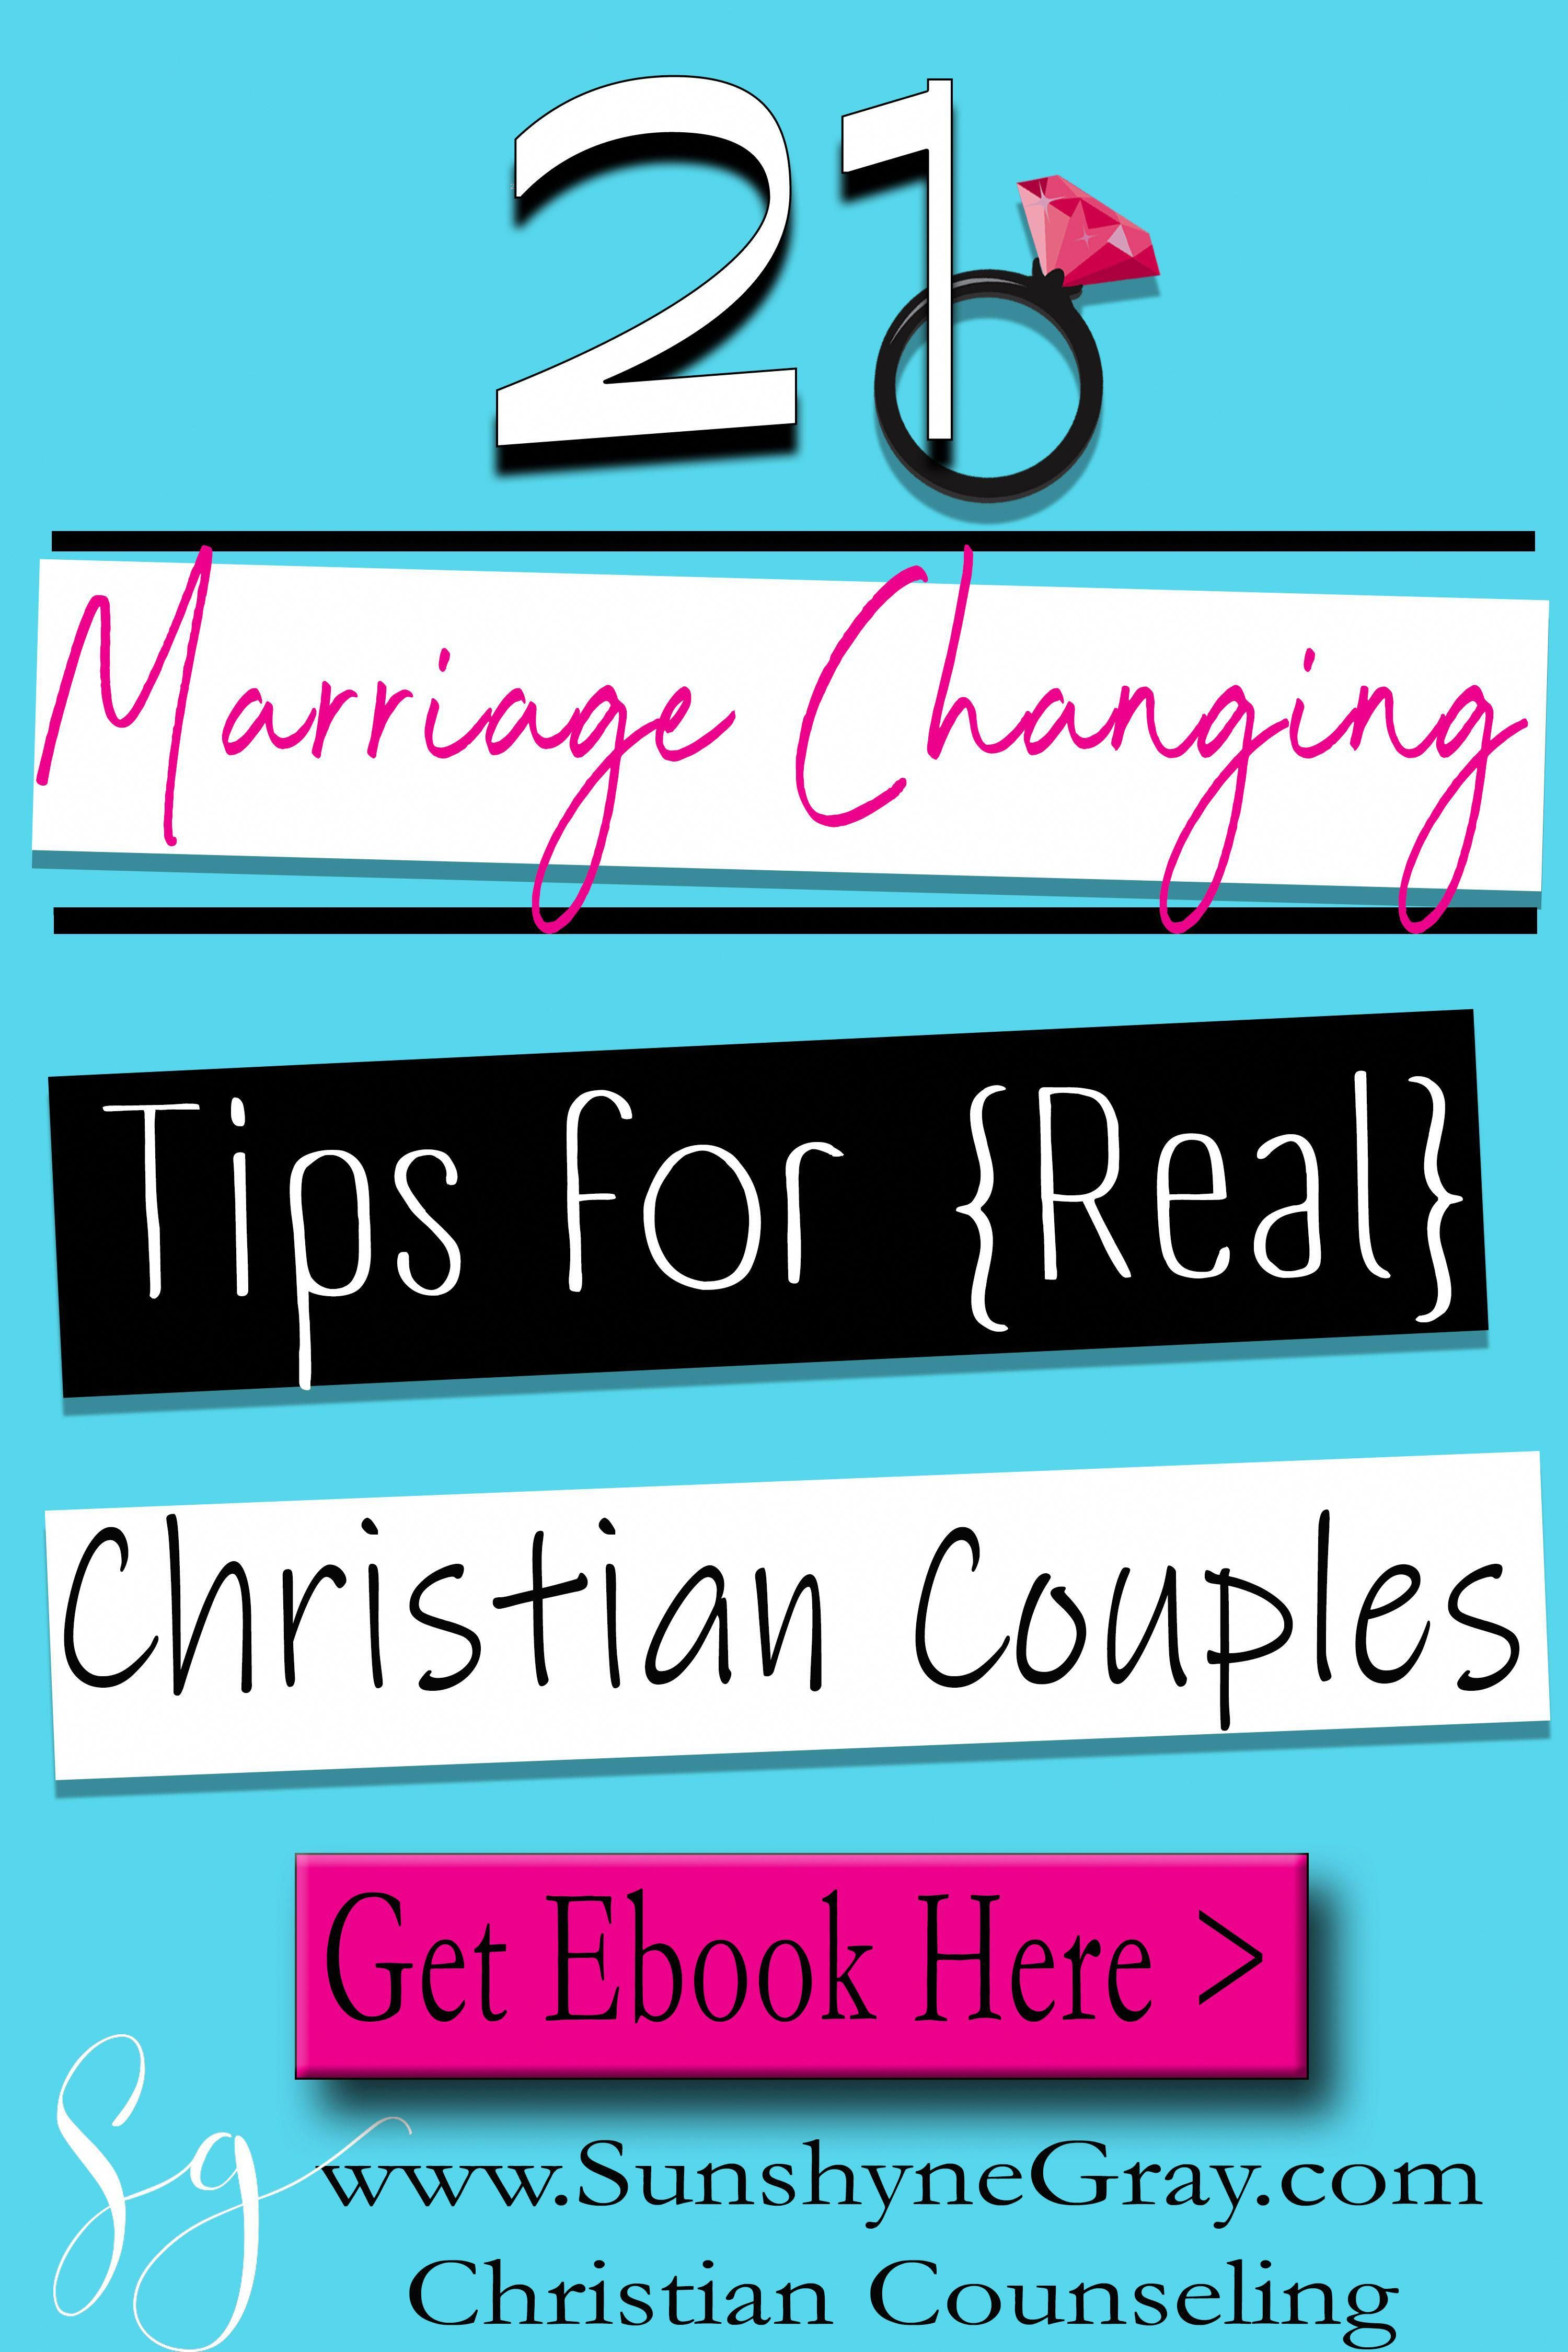 Pin By Roxanne Pinkston On Christian Counselor In